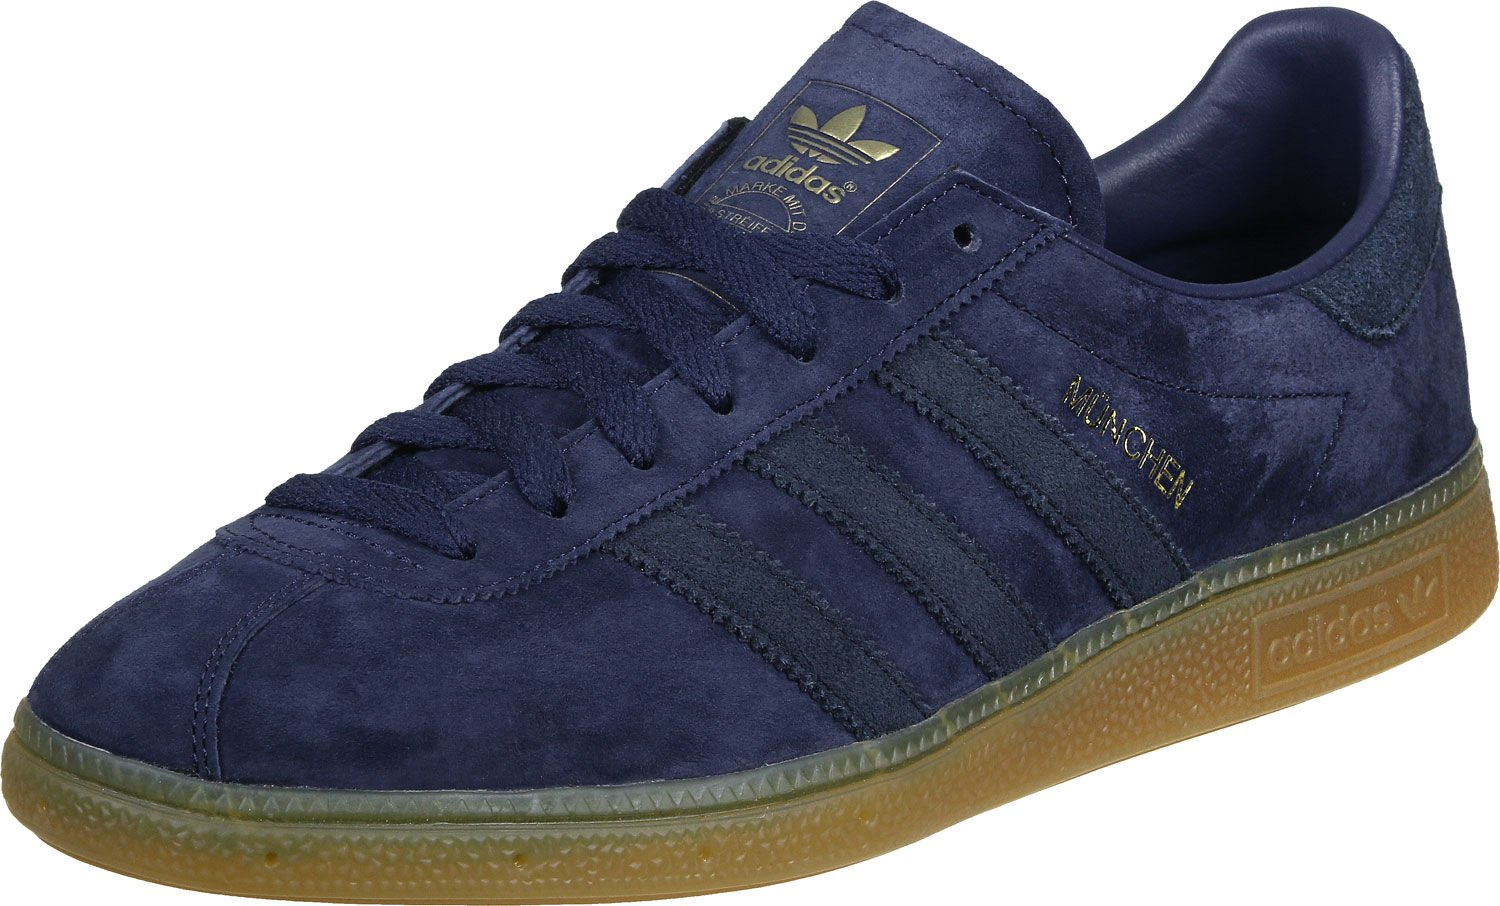 Chaussures classiques homme ADIDAS Adidas München